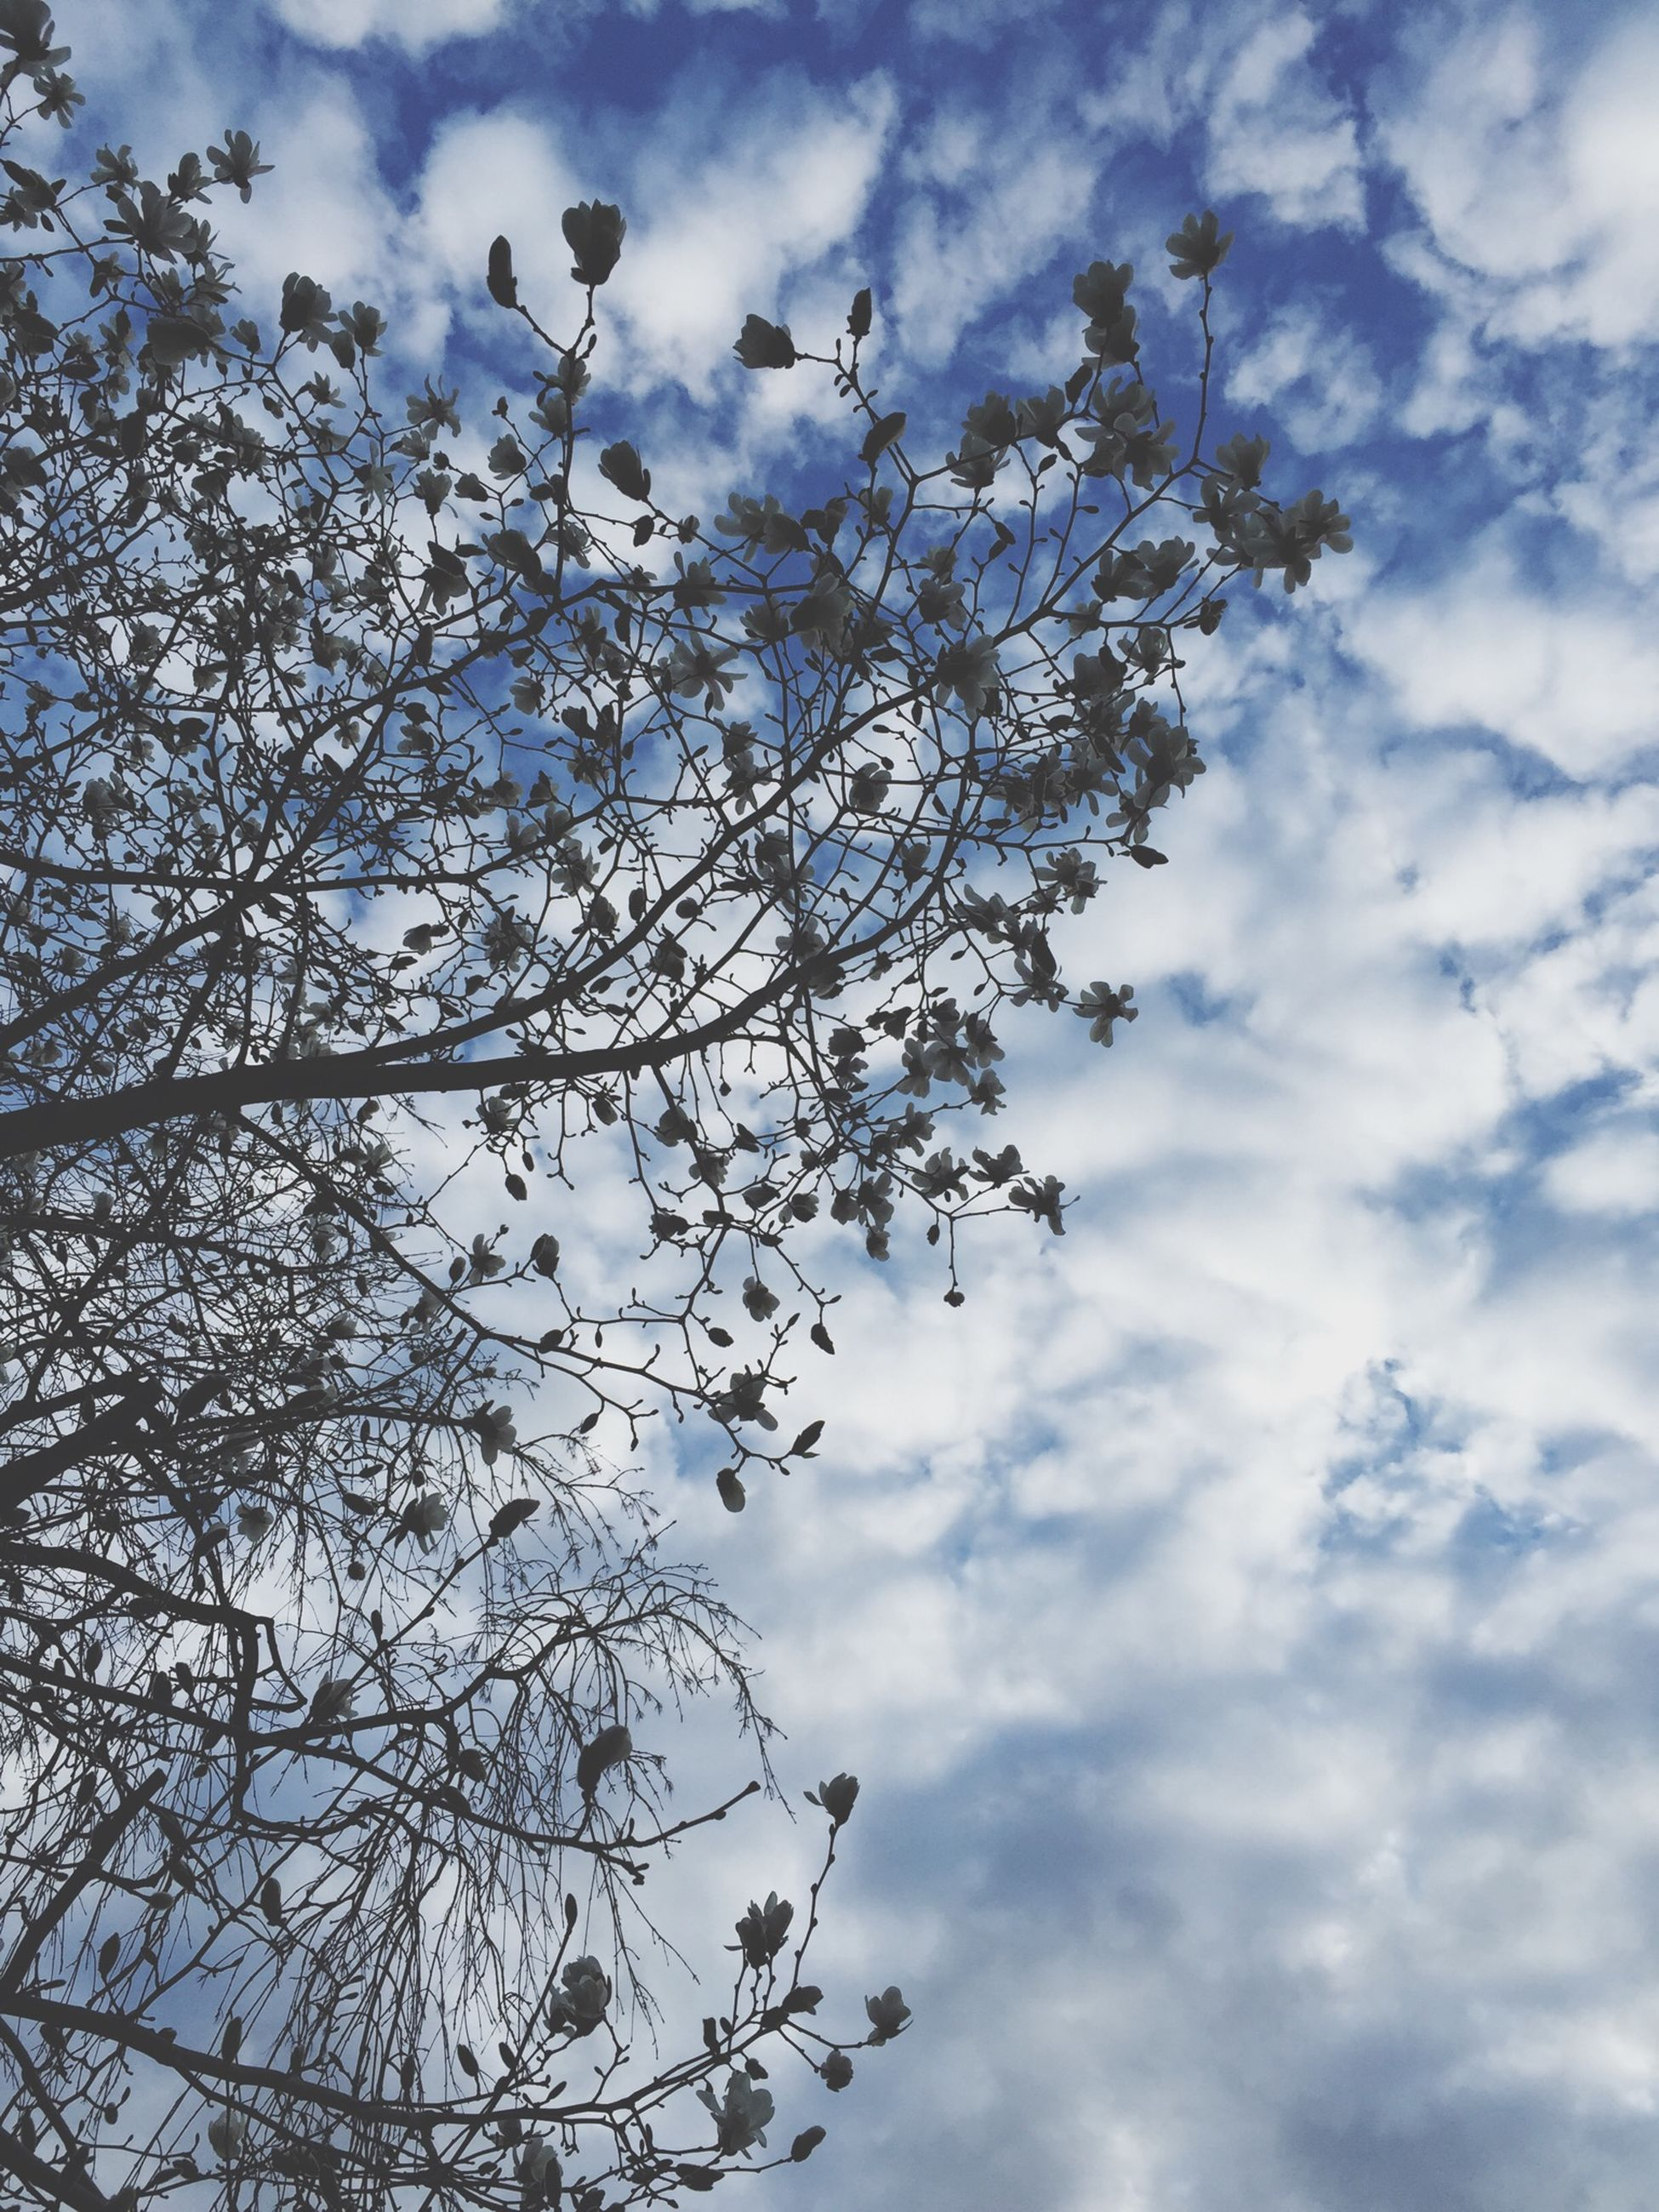 low angle view, sky, tree, branch, cloud - sky, flower, nature, growth, beauty in nature, cloud, cloudy, day, outdoors, blue, cherry blossom, tranquility, freshness, no people, white color, blossom